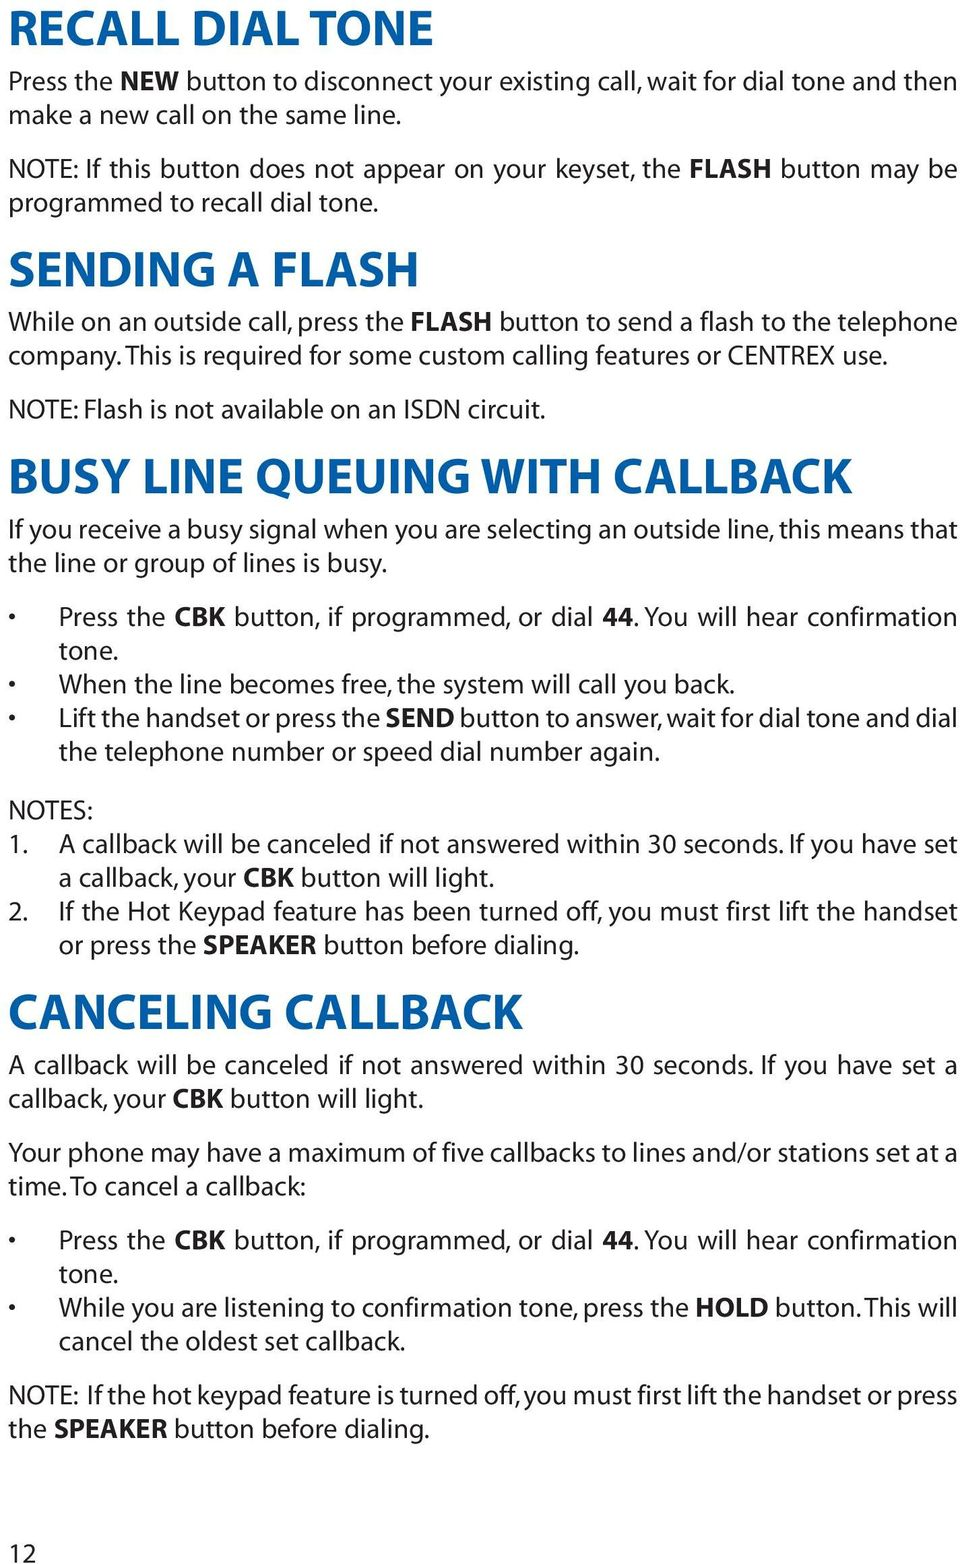 SENDING A FLASH While on an outside call, press the FLASH button to send a flash to the telephone company. This is required for some custom calling features or CENTREX use.